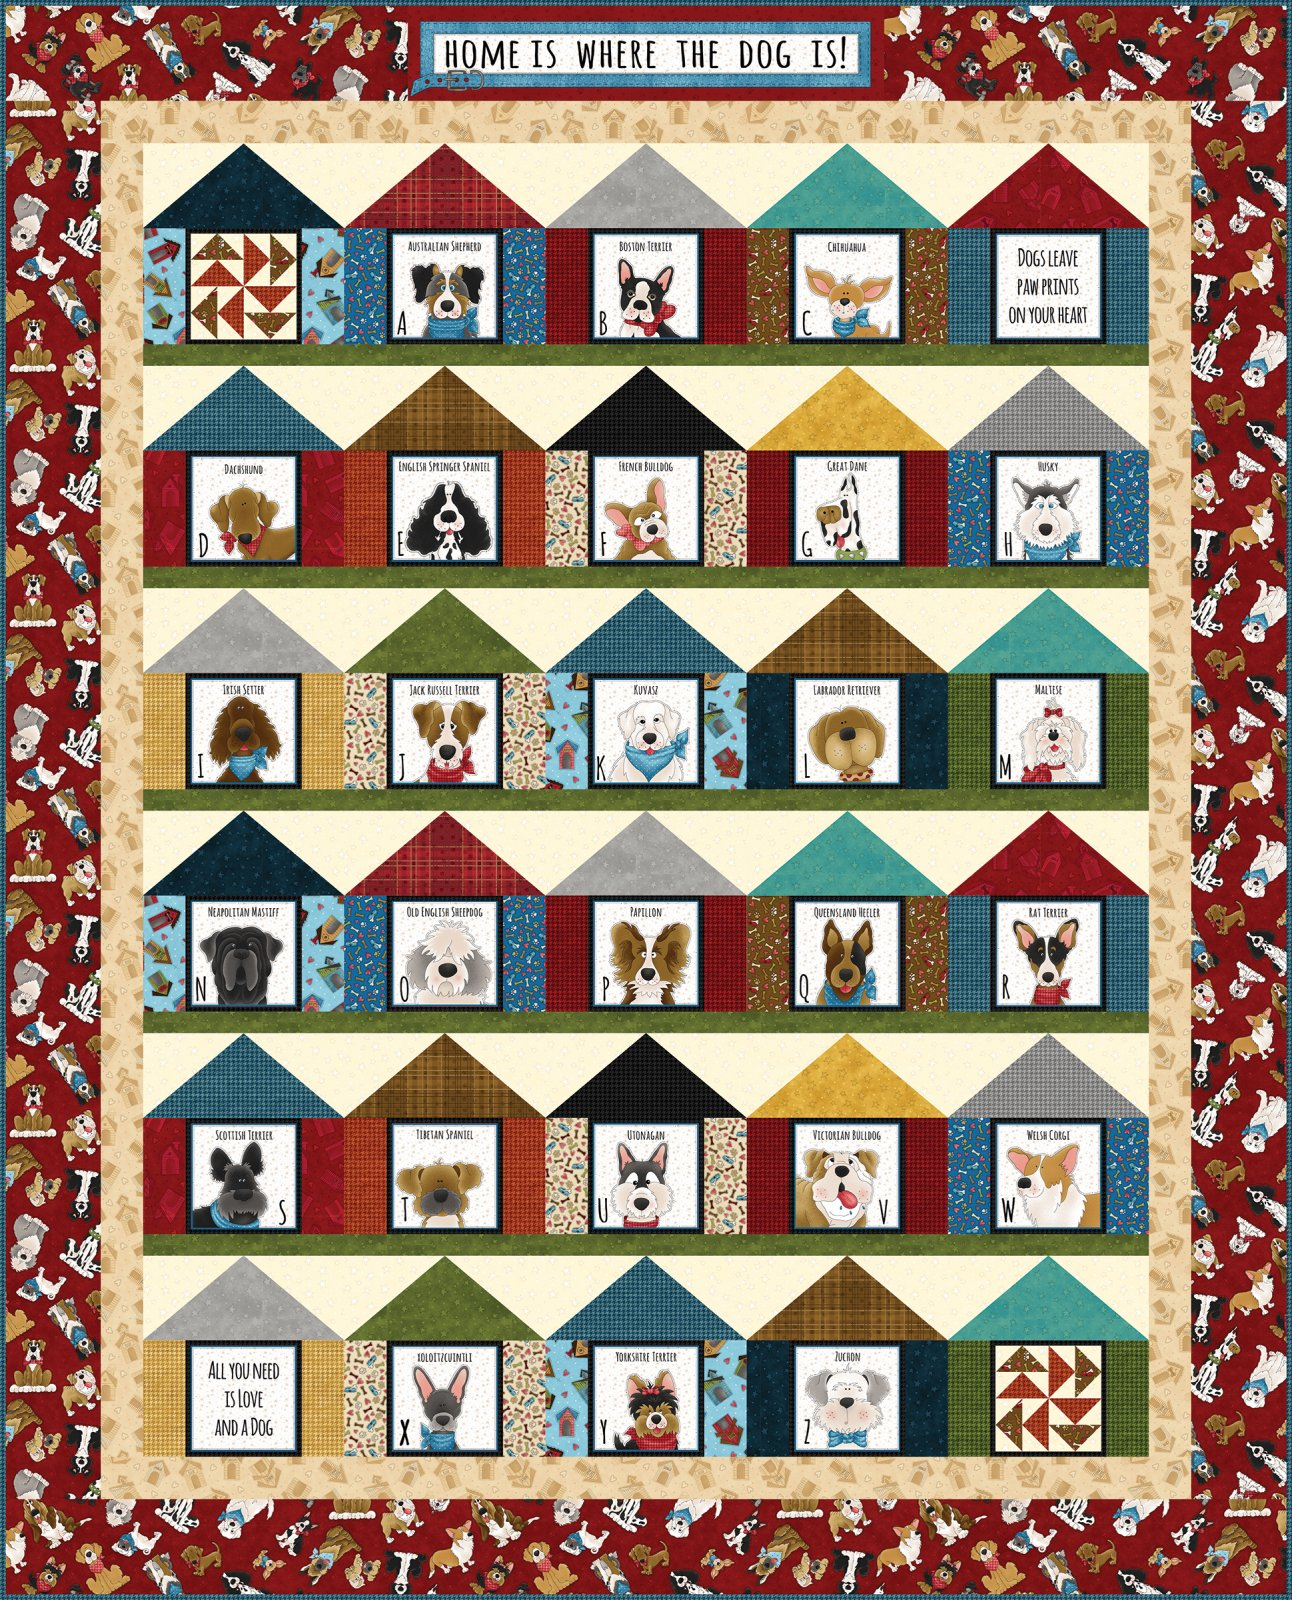 Home Is Where the Dog Is Pieced Quilt Kit